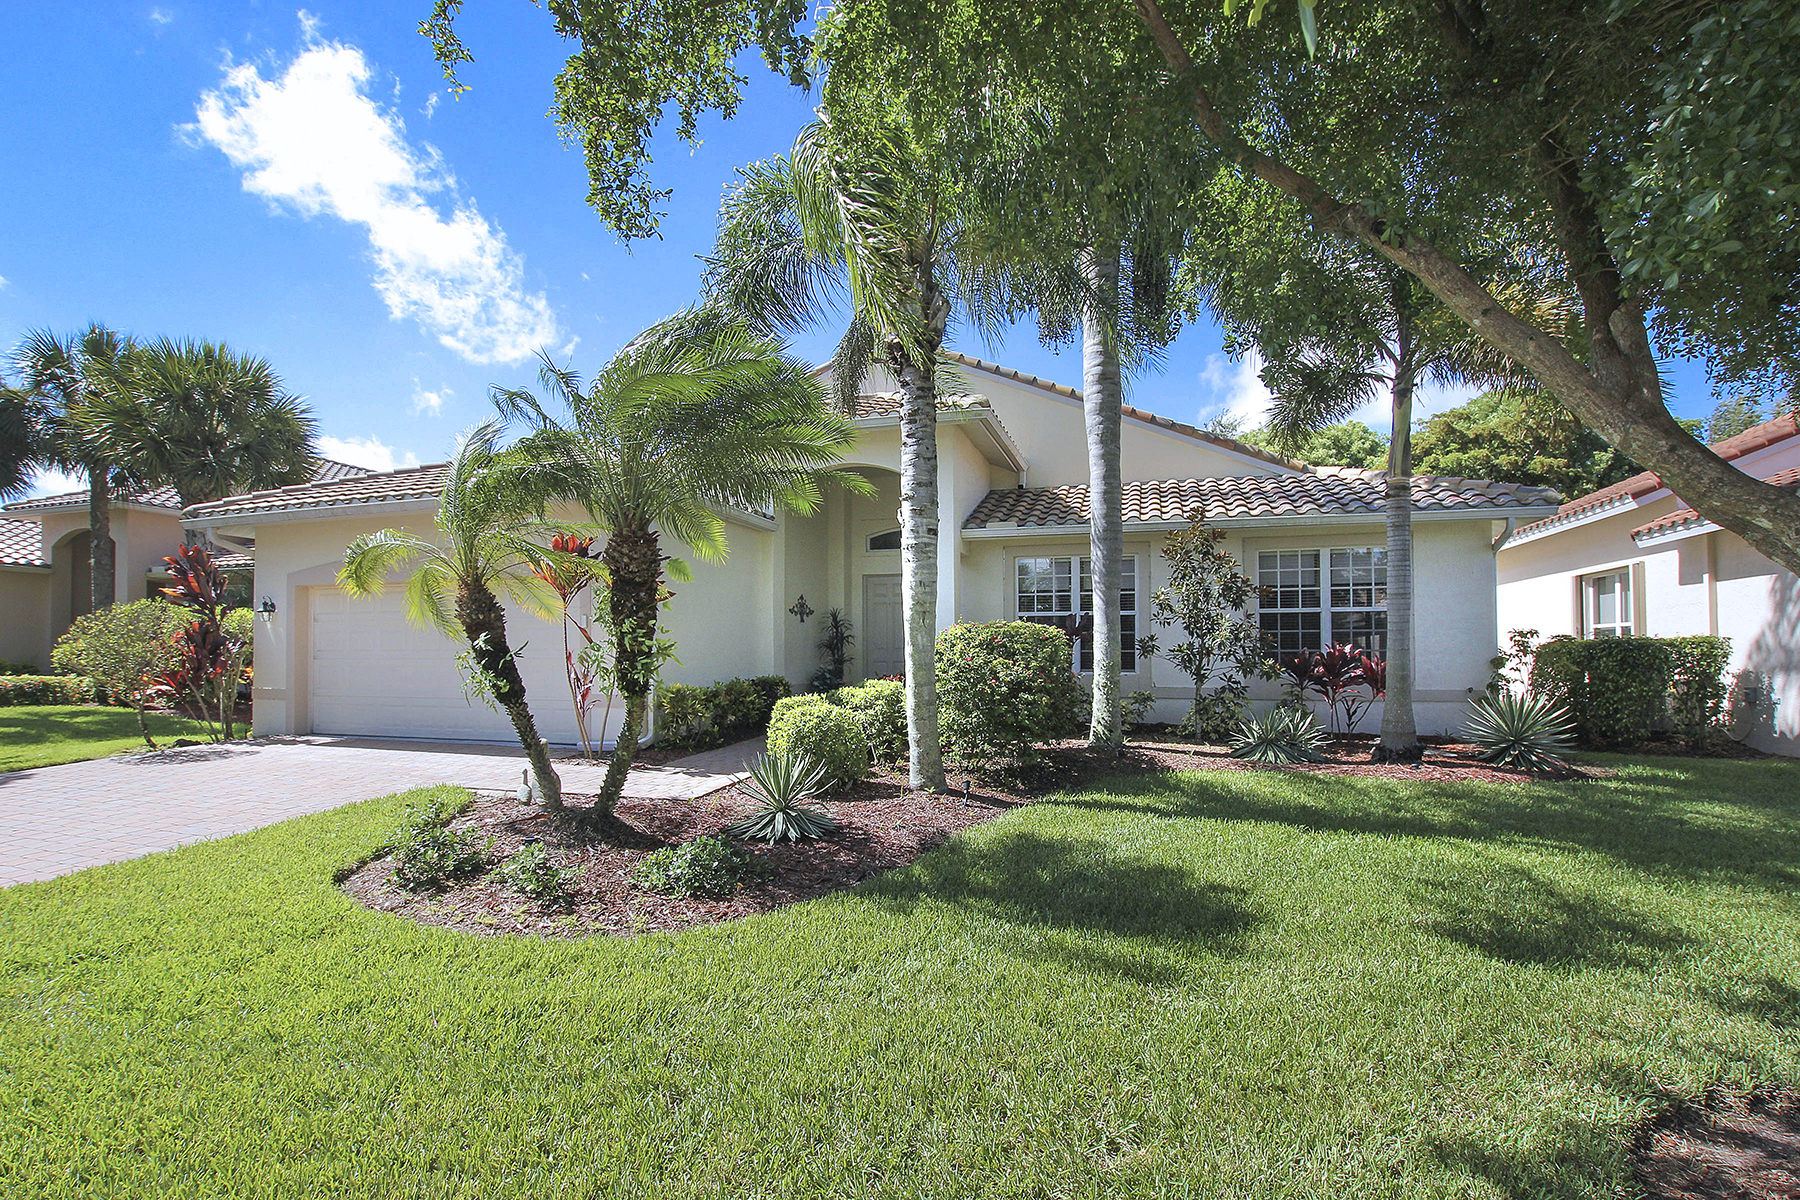 Single Family Home for Sale at 20438 Foxworth Cir , Estero, FL 33928 20438 Foxworth Cir, Estero, Florida 33928 United States